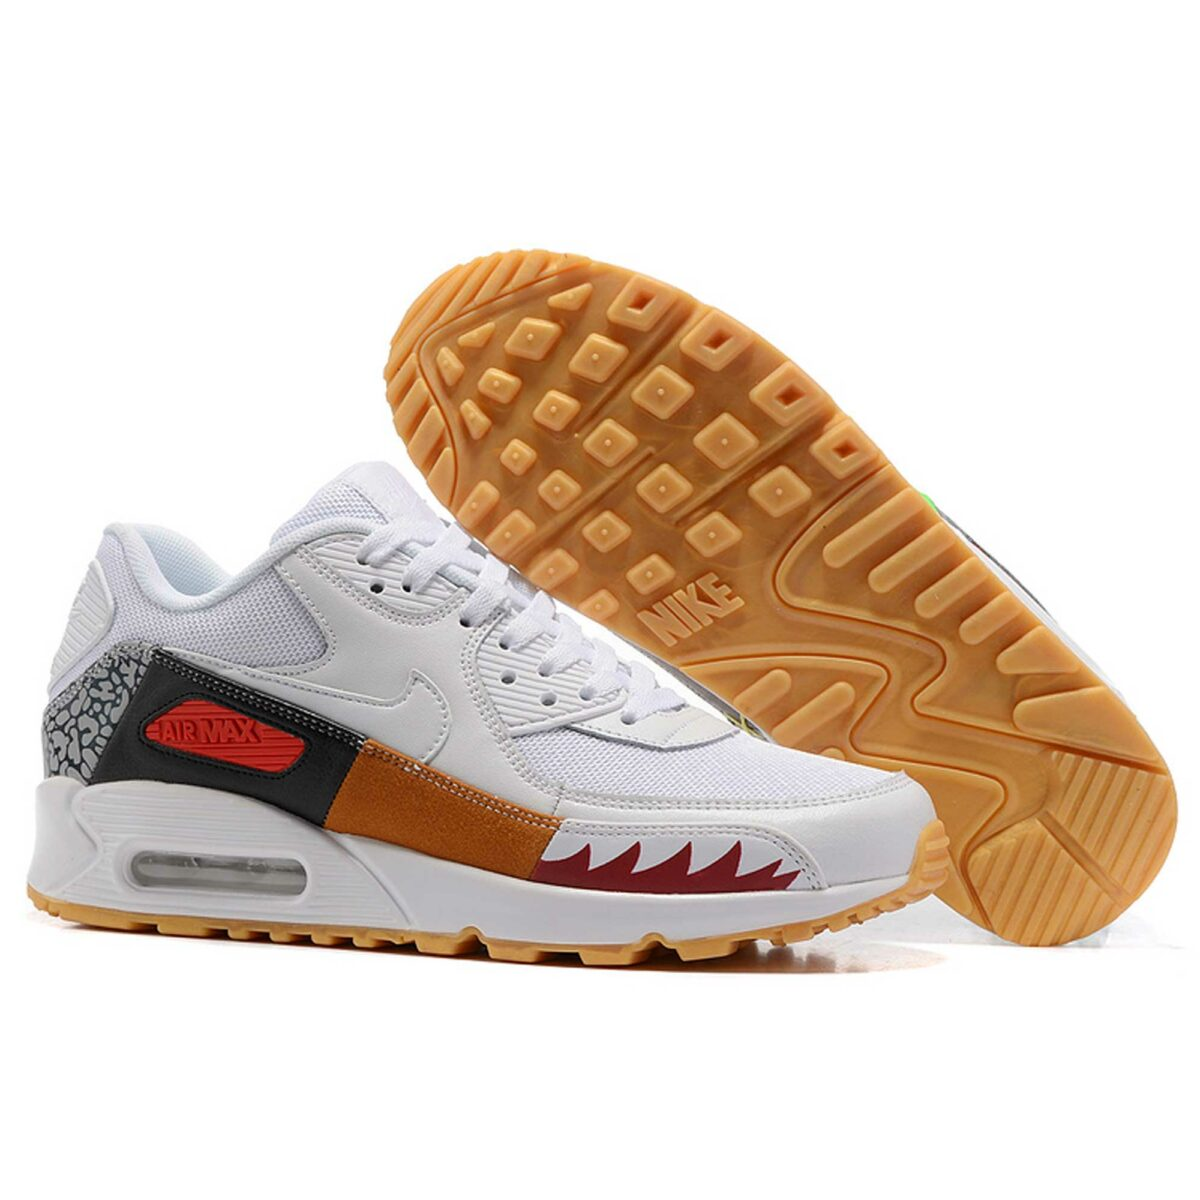 nike air max 90 premium QS atmos white brown multi-color купить